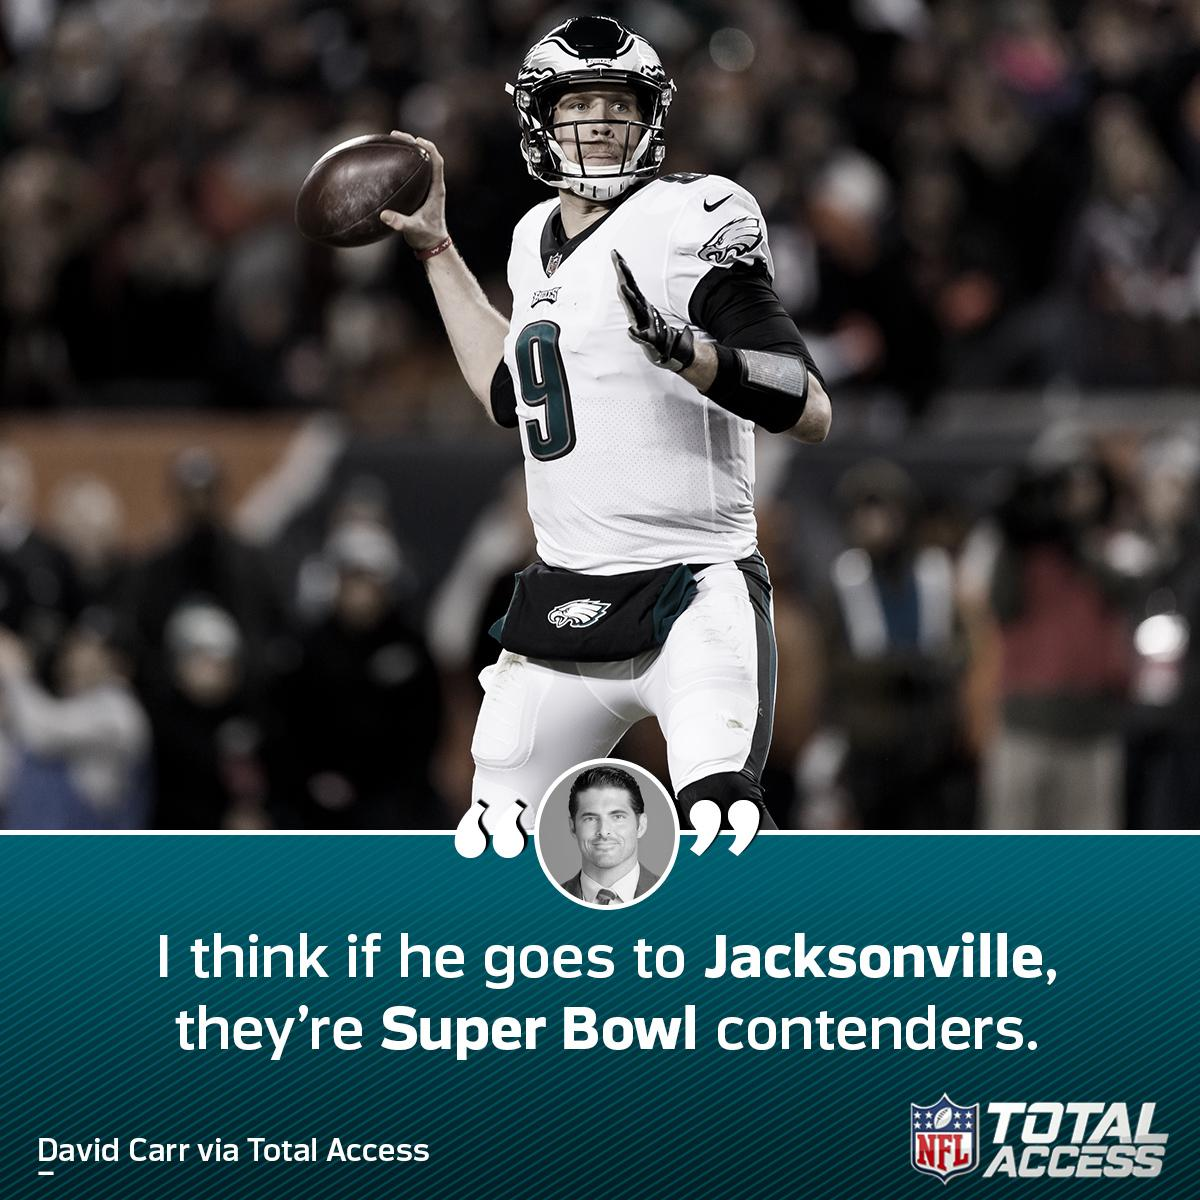 Could Nick Foles lead the Jags to a ring?   (via @DCarr8)<br>http://pic.twitter.com/1iwy95Nv1l